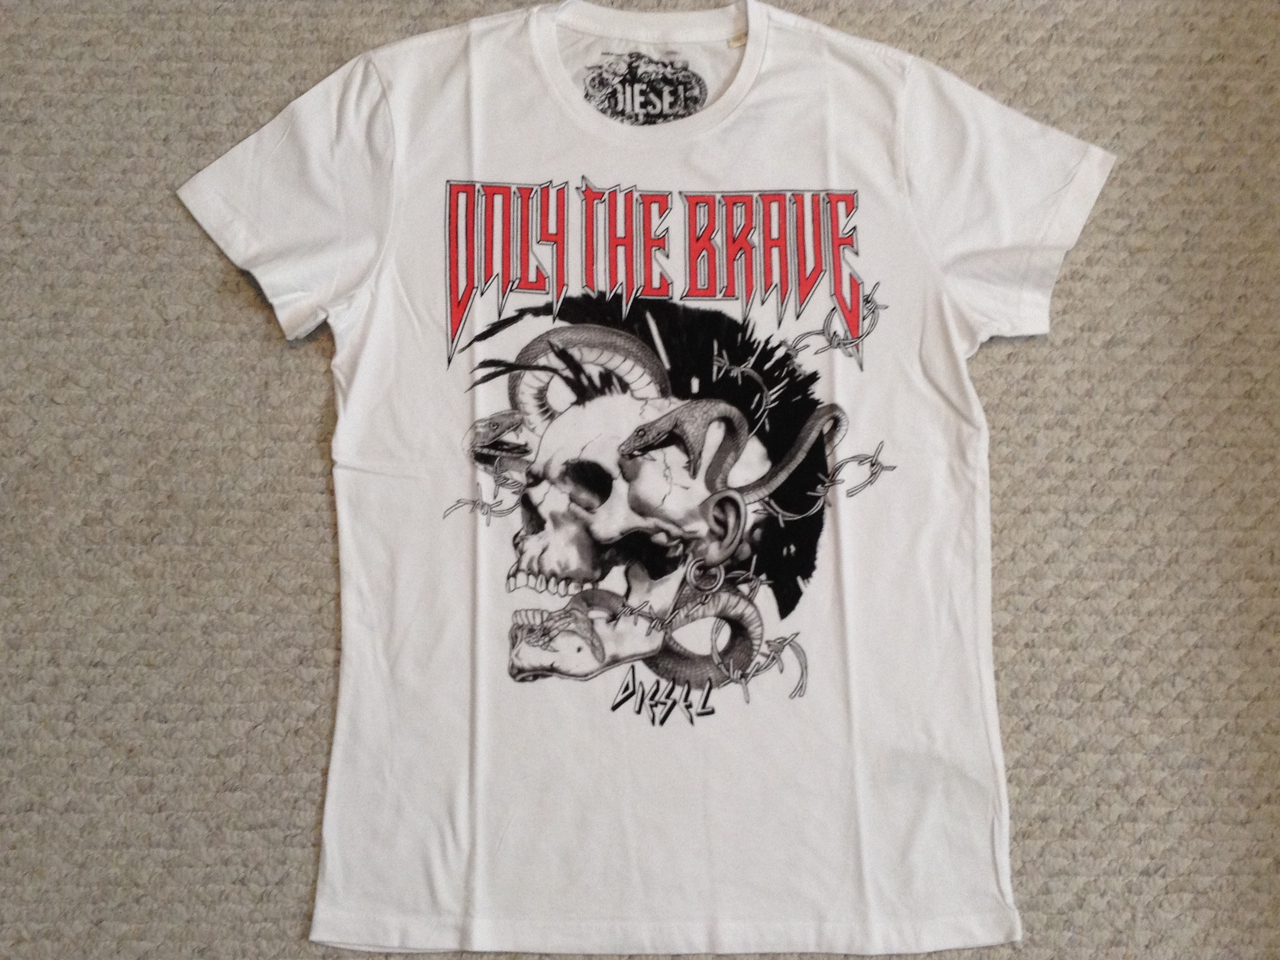 Diesel T8 Mohican T Shirt - White (Only The Brave Print)